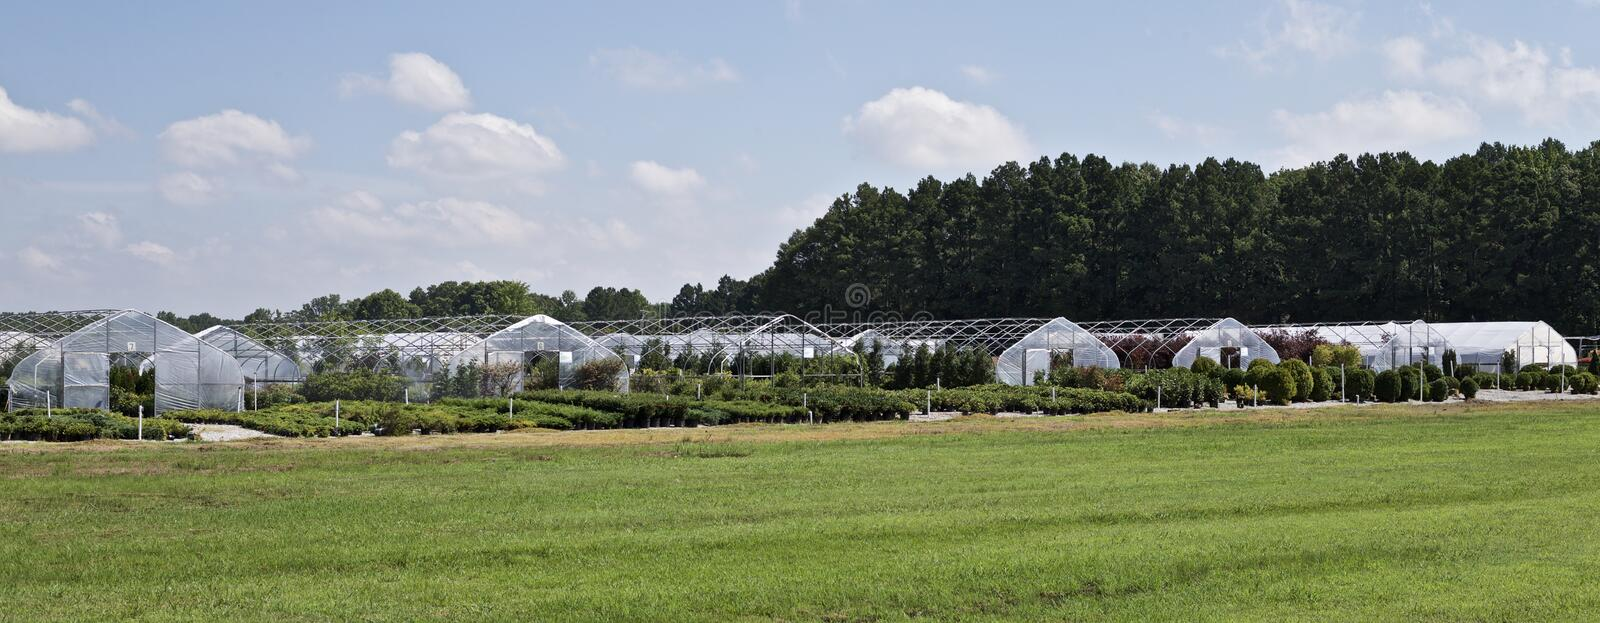 Plants being grow and sold at a Nursery. Commercial crops of various types of plants being readied sale at a Nursery stock image